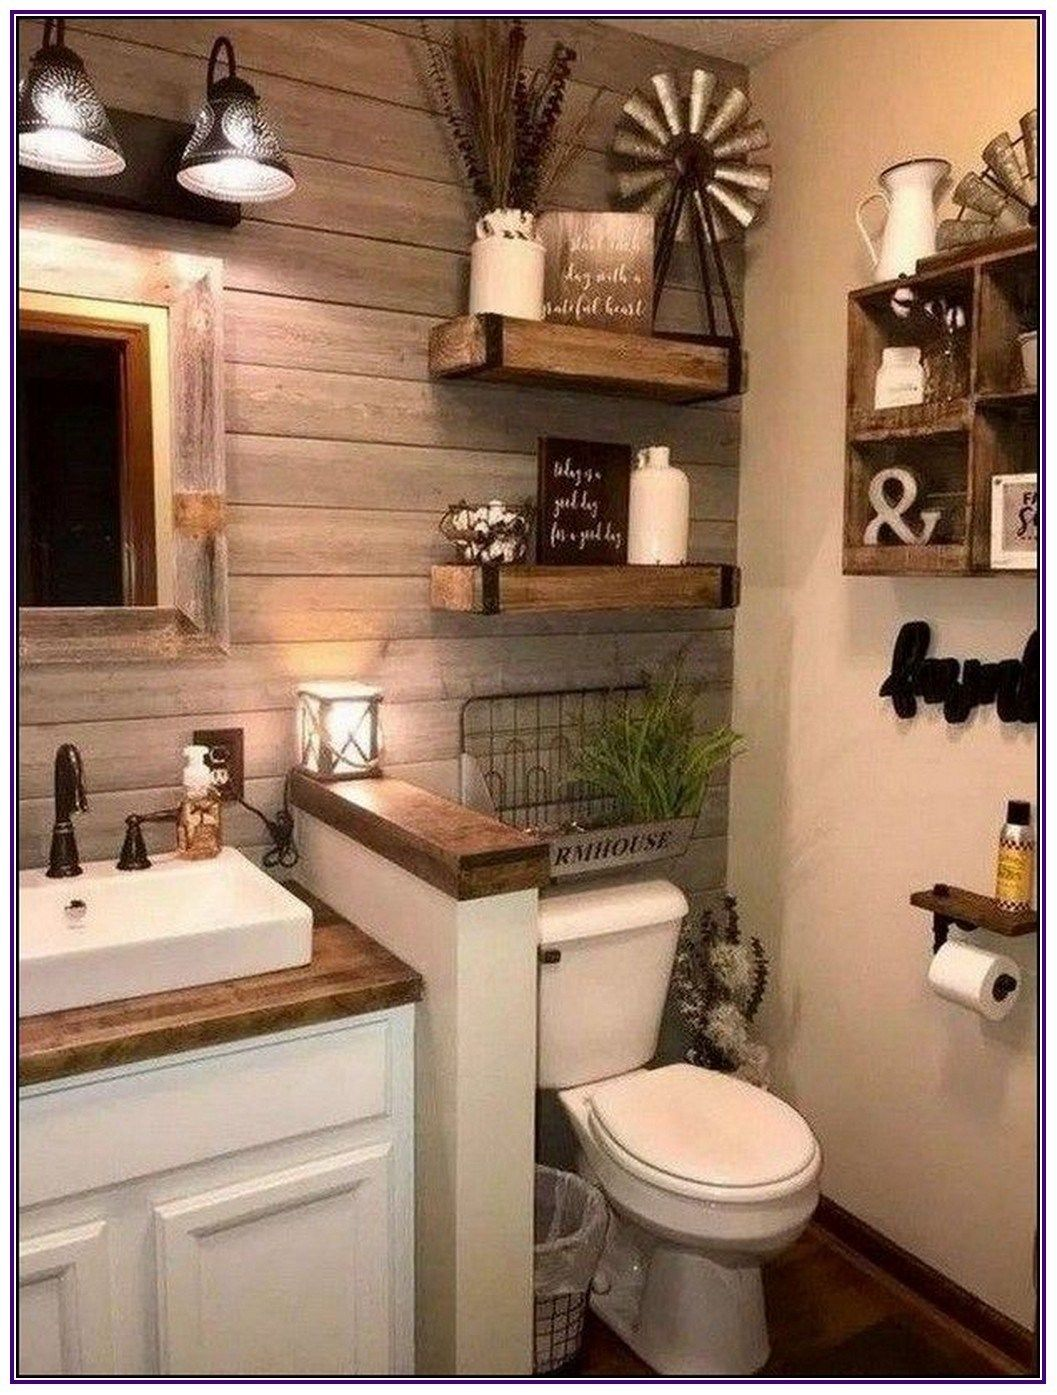 26 Borderline Genius Home Improvement Projects That Are Easier Than They Look 00022 Farmhouse Bathroom Decor Bathroom Remodel Master Bathroom Decor